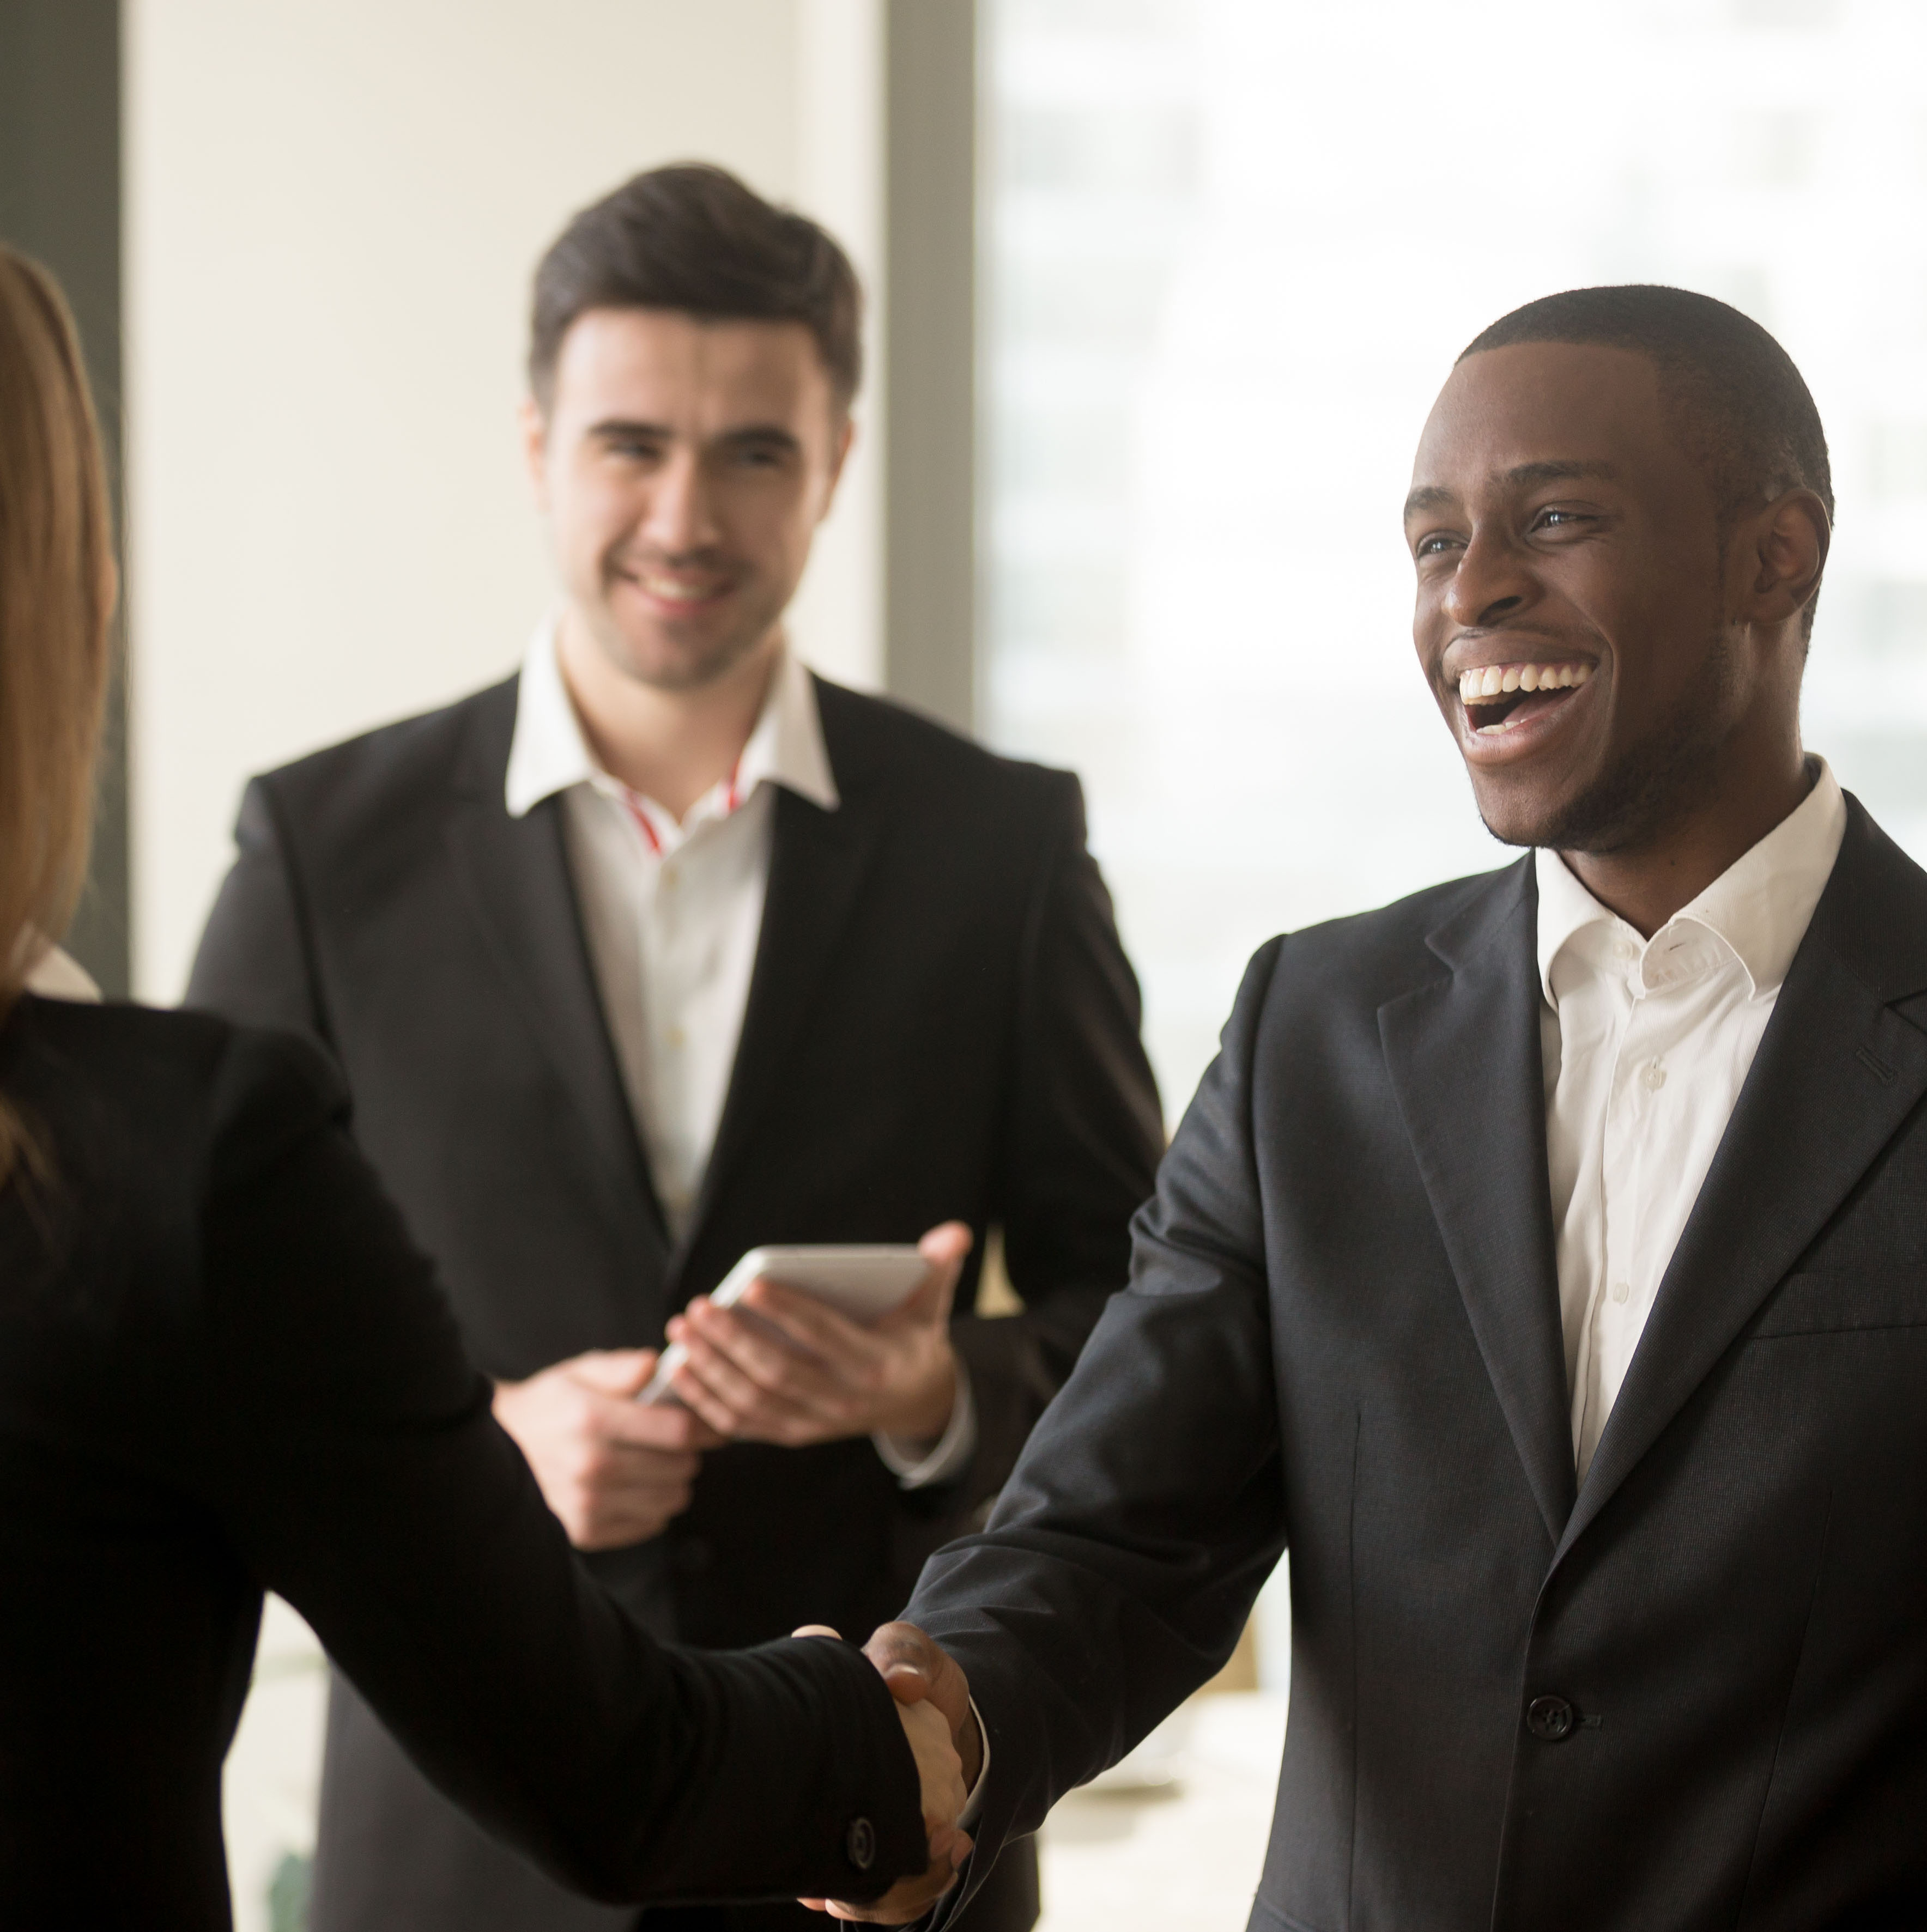 A person smiling and shaking someones hand while another person smiles in the background